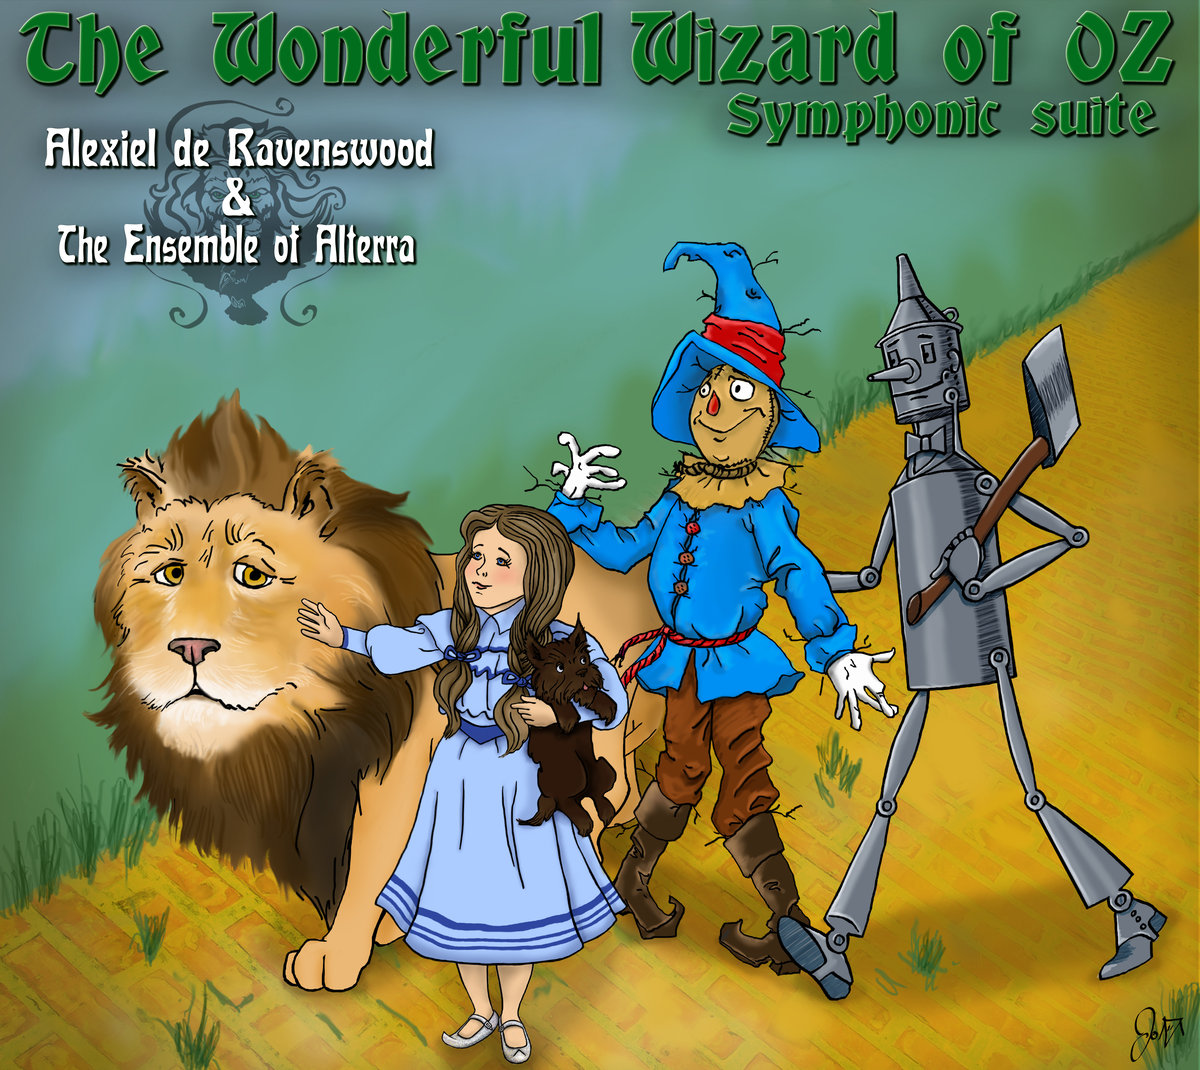 wonderful wizard of oz After clashing over royalties from a popular 1902 musical production called the wizard of oz (the first time wonderful was deleted from the title), the men parted ways.